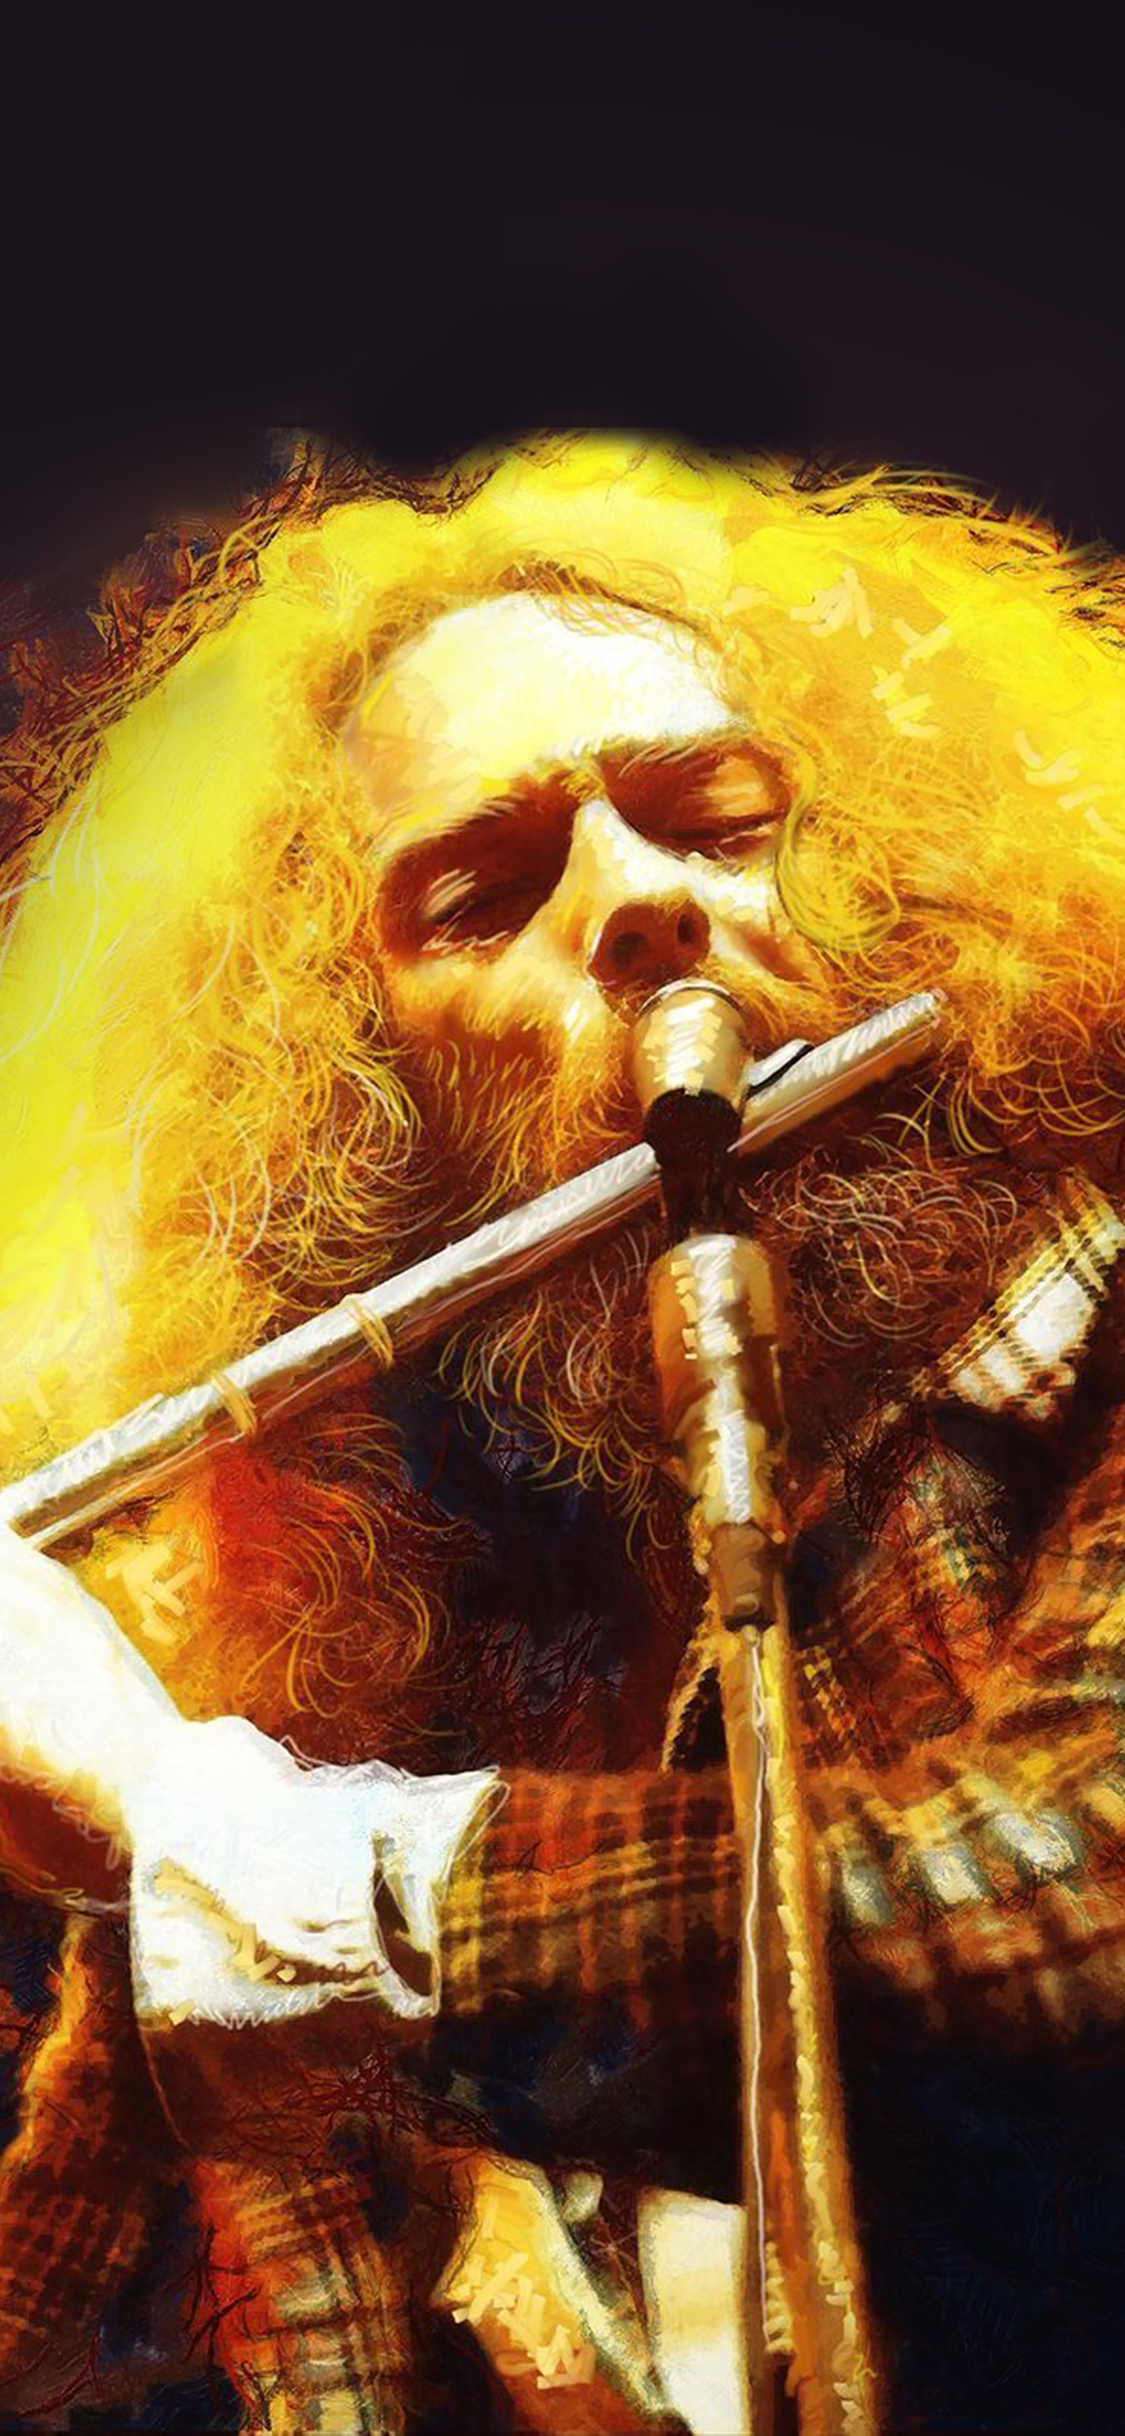 iPhoneXpapers.com-Apple-iPhone-wallpaper-ac17-wallpaper-jethro-tull-live-at-madison-square